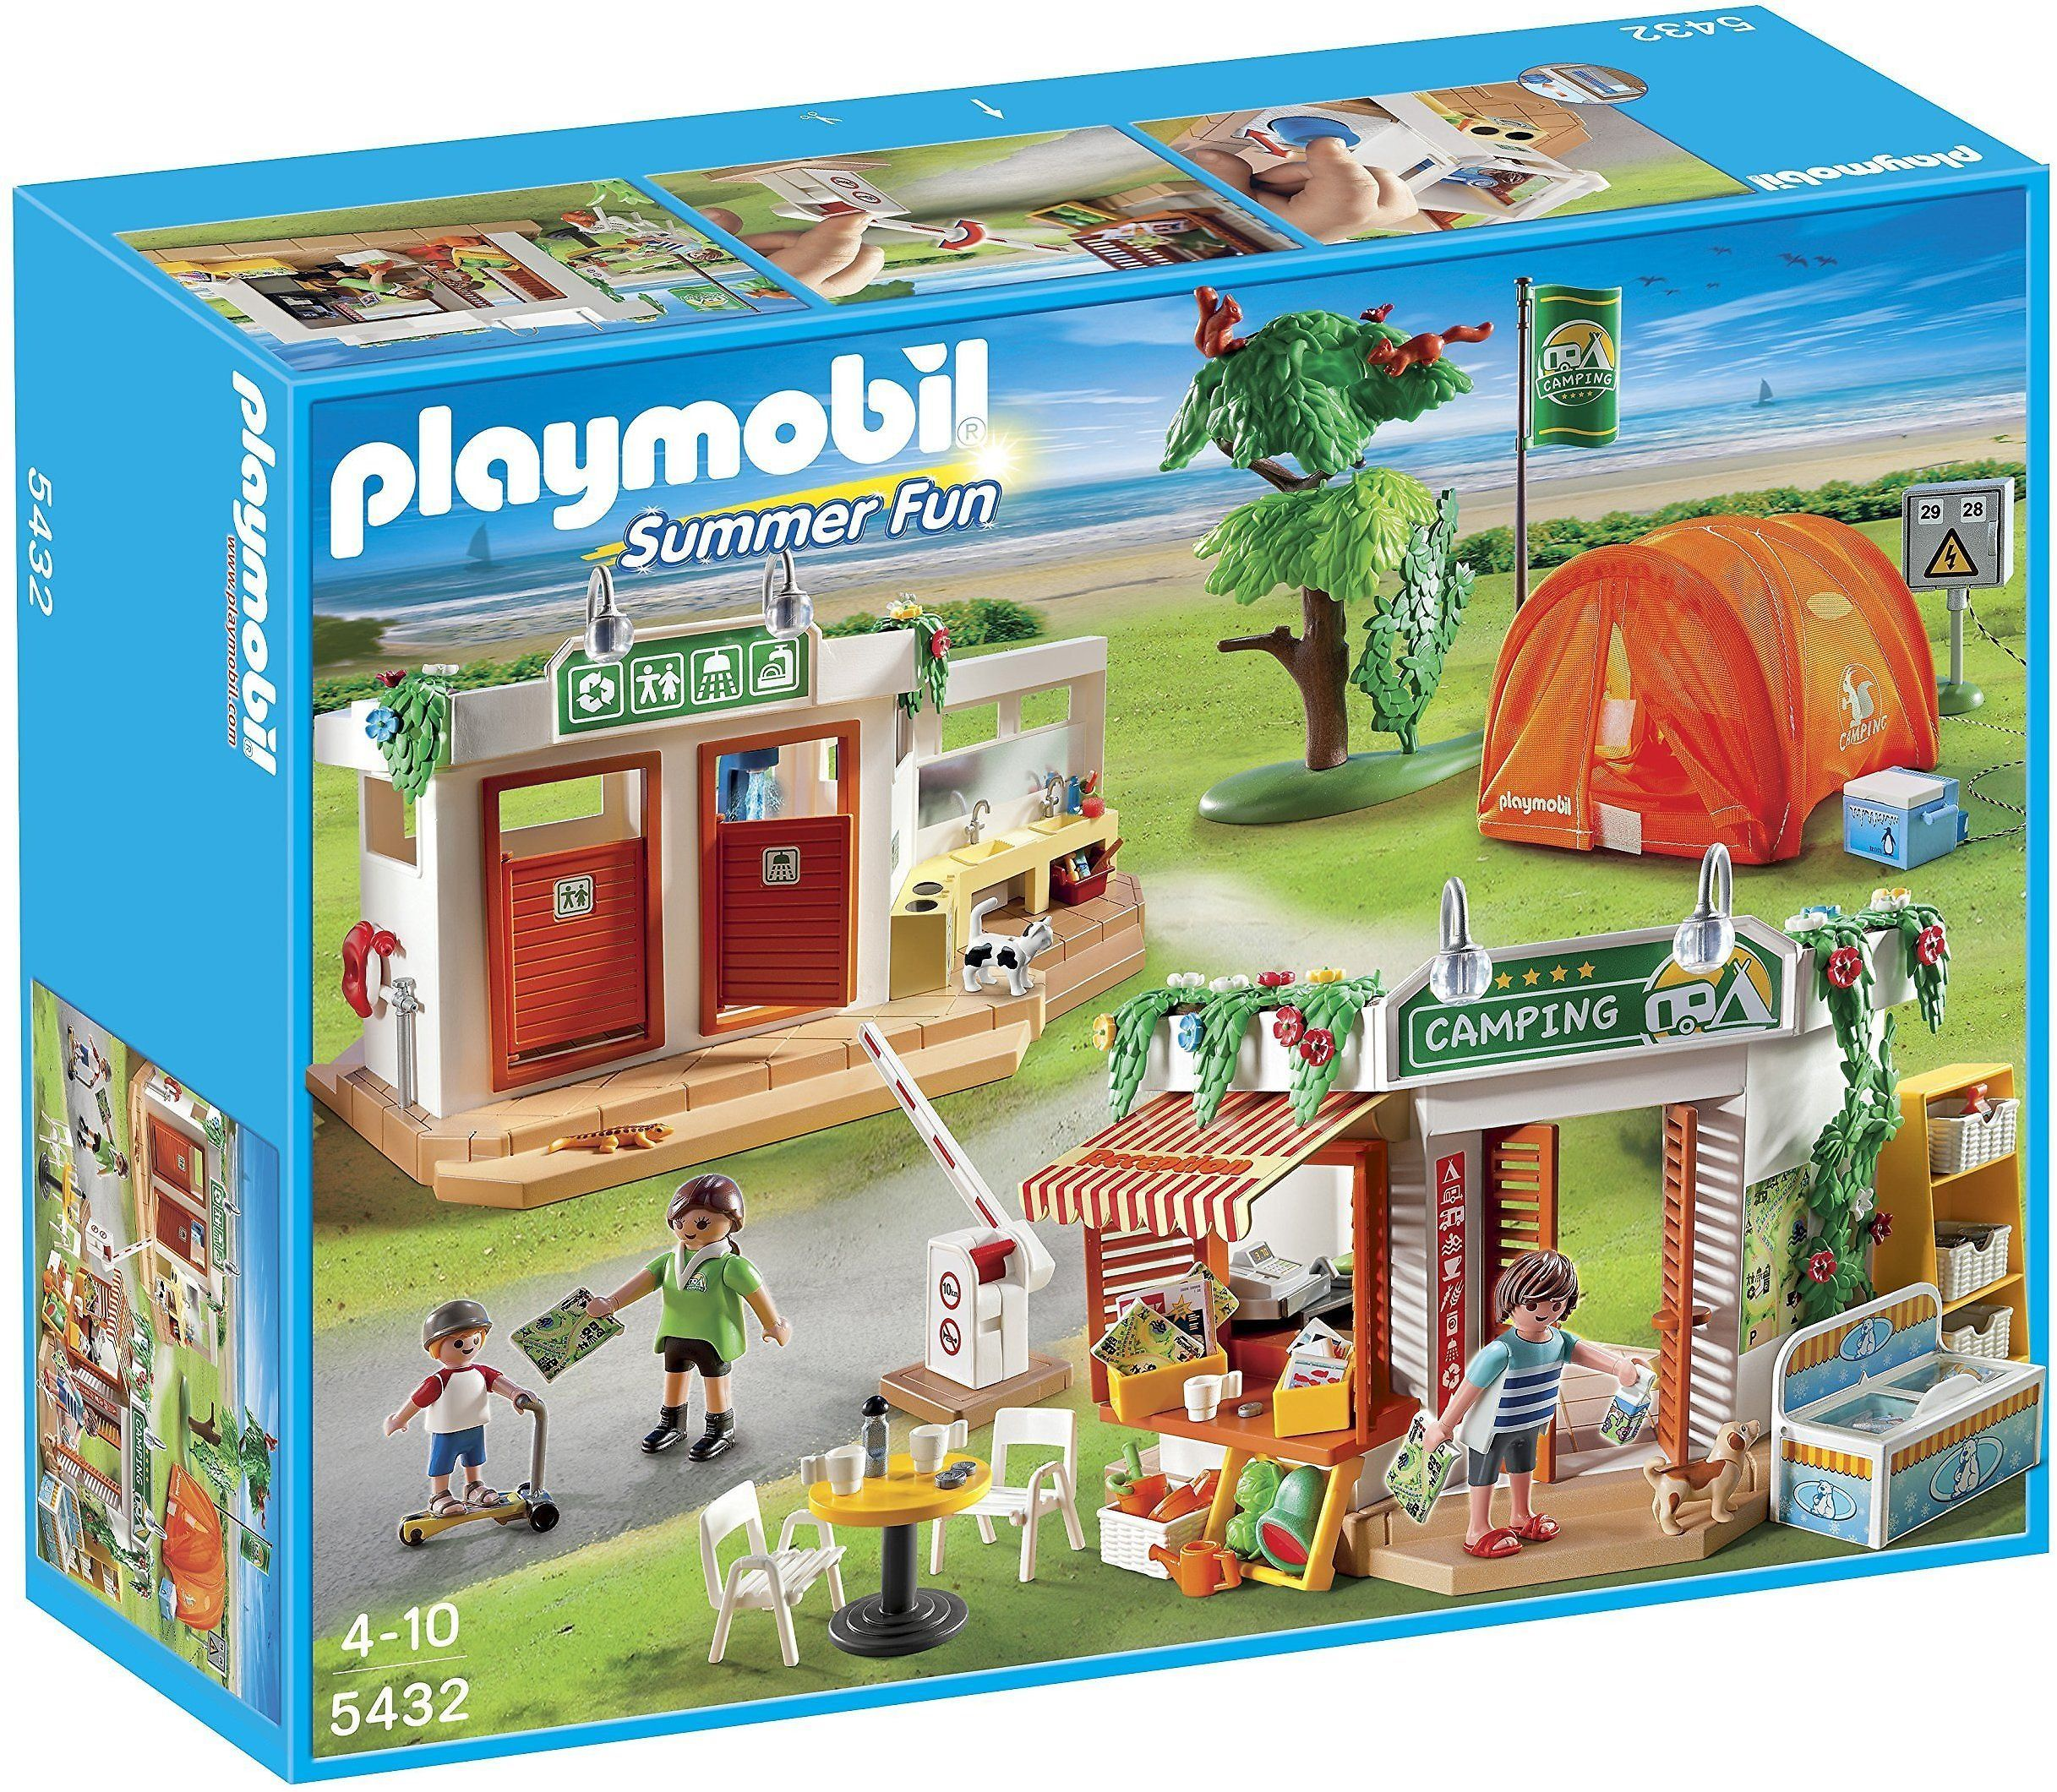 Playmobil Camp Site Play Set Playmobil Camping Fun Best Summer Camps